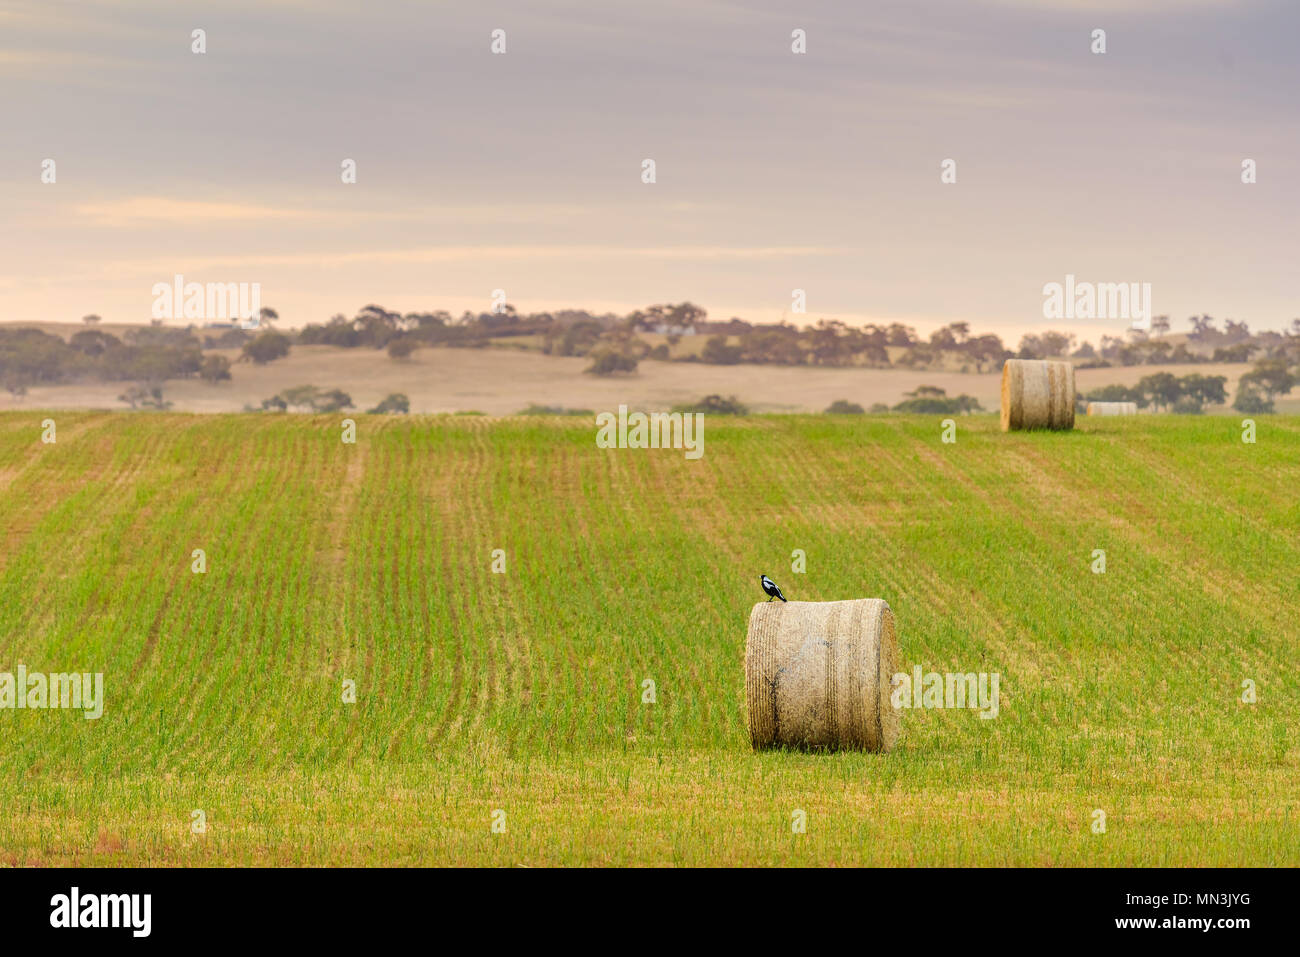 Magpie sitting on round hay bale on the field after harvest in McLaren Vale, South Australia - Stock Image